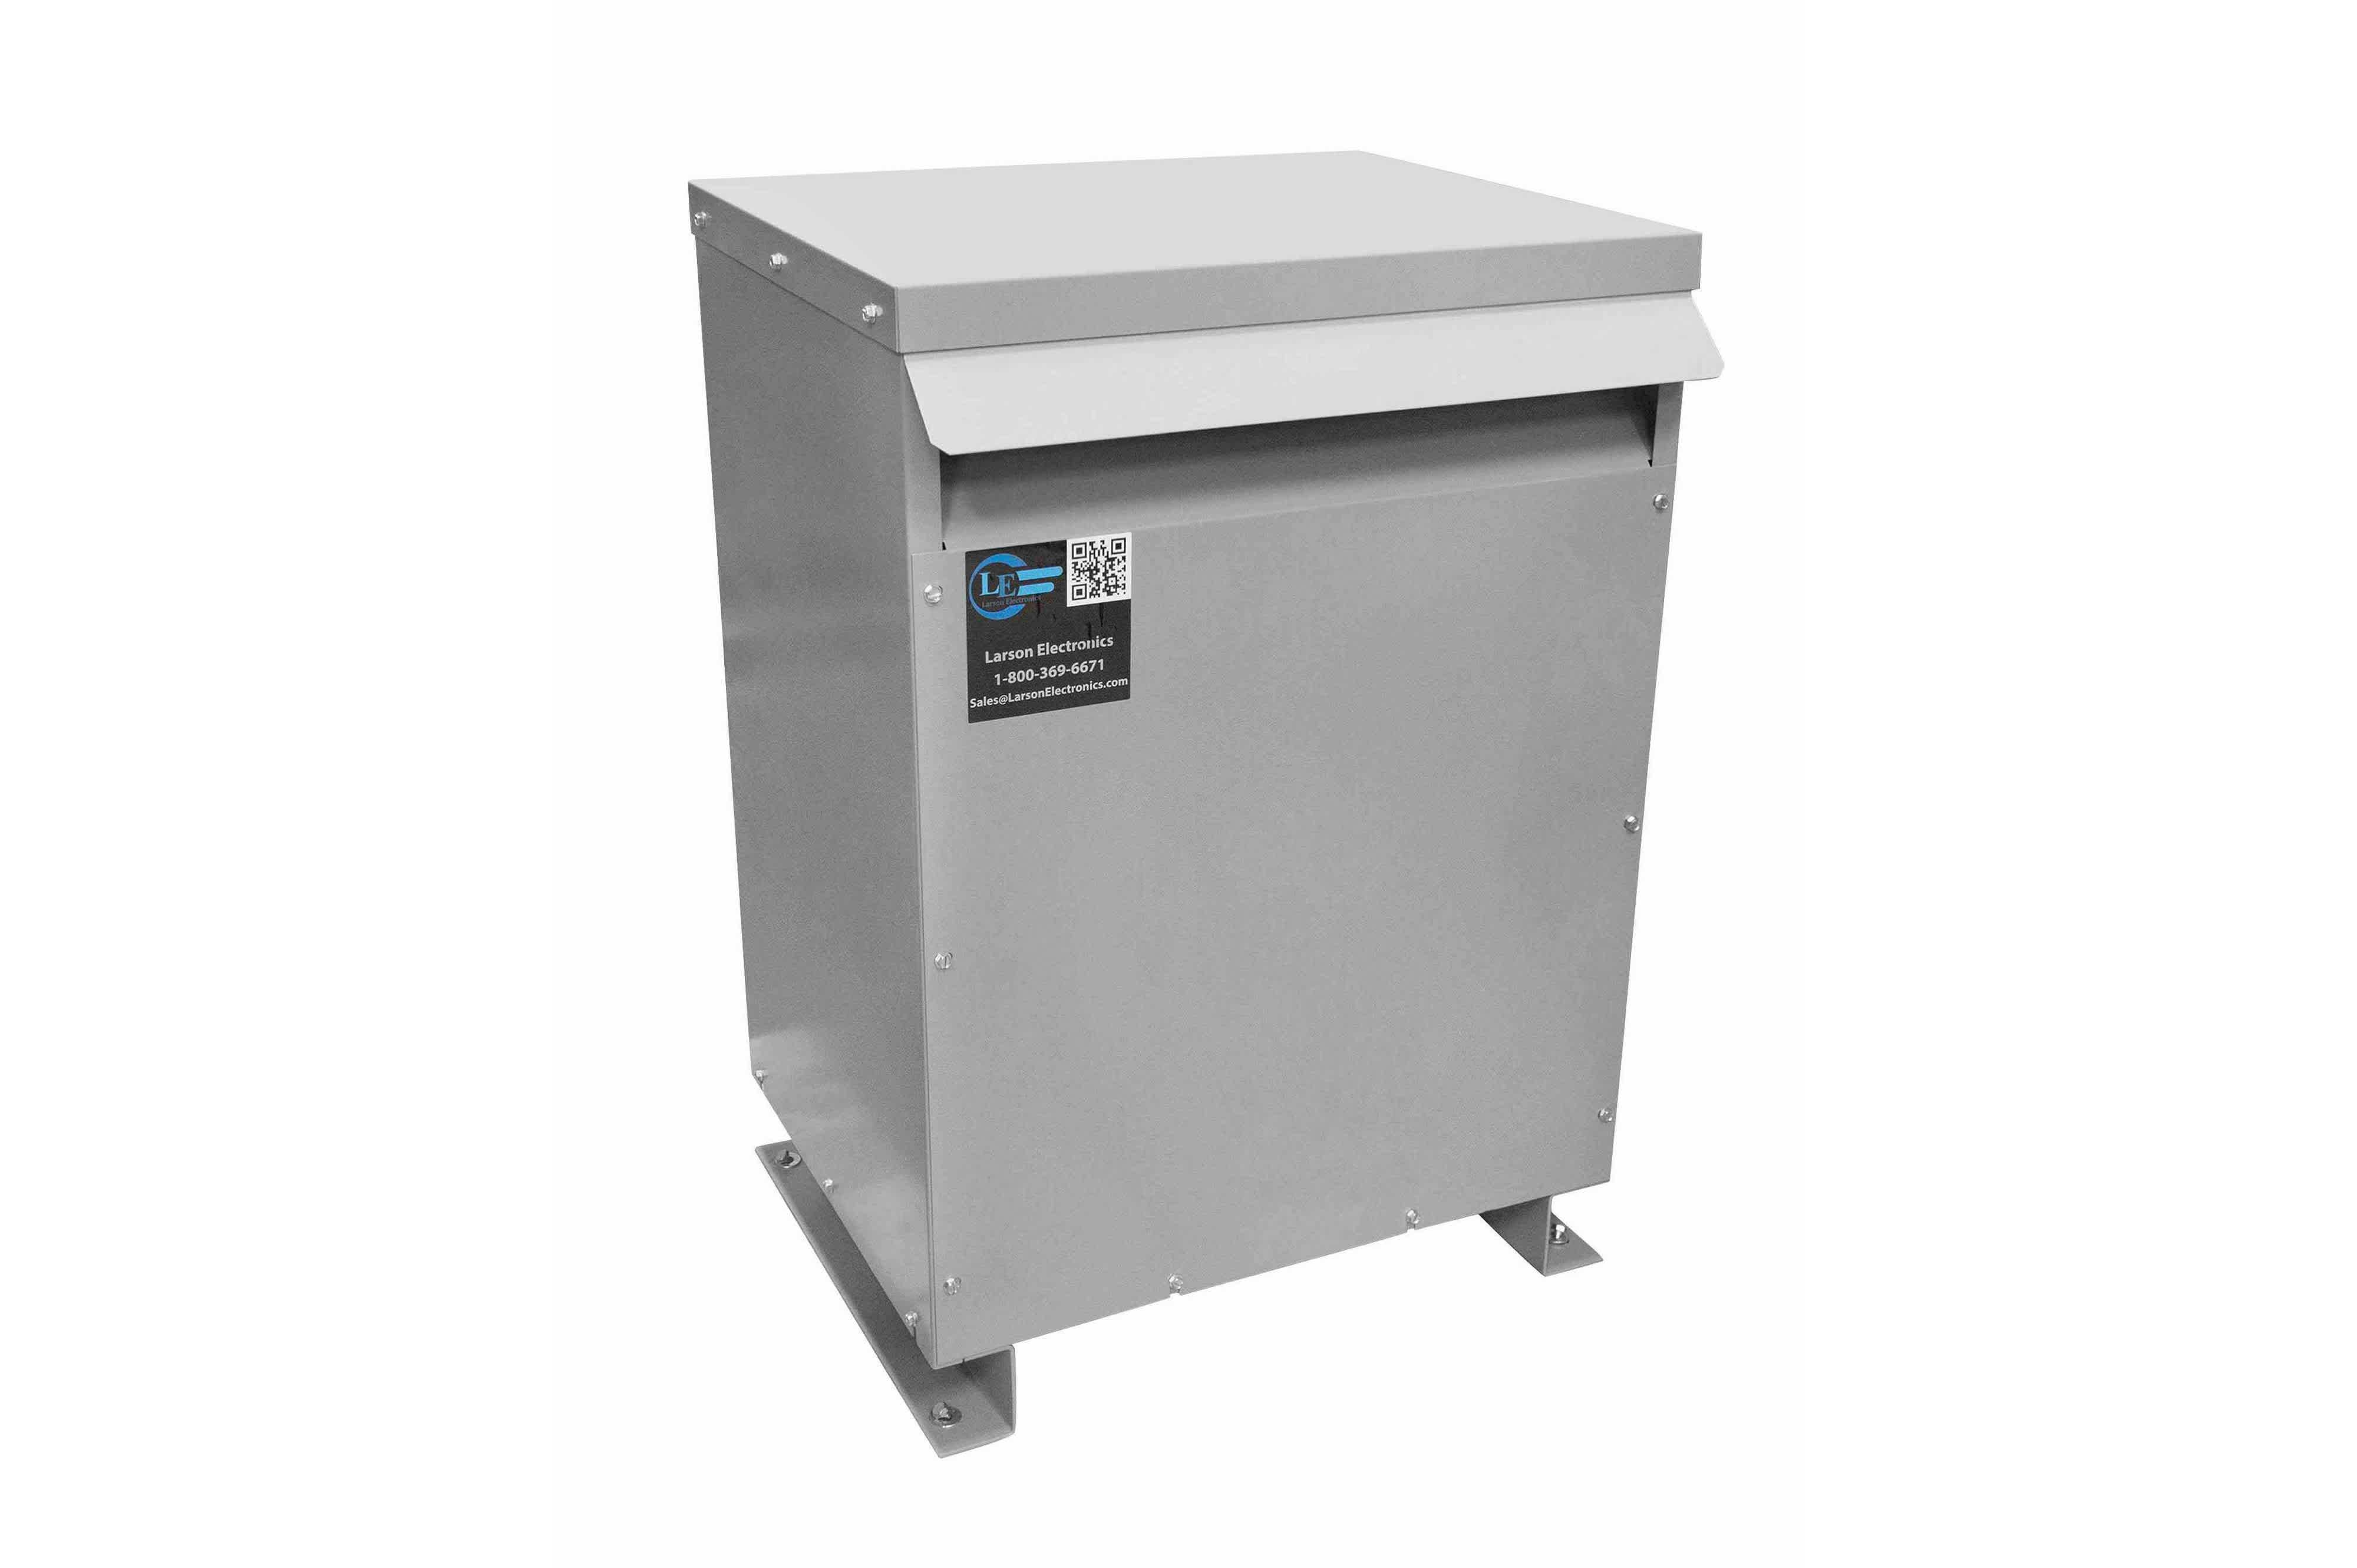 55 kVA 3PH Isolation Transformer, 480V Wye Primary, 600Y/347 Wye-N Secondary, N3R, Ventilated, 60 Hz